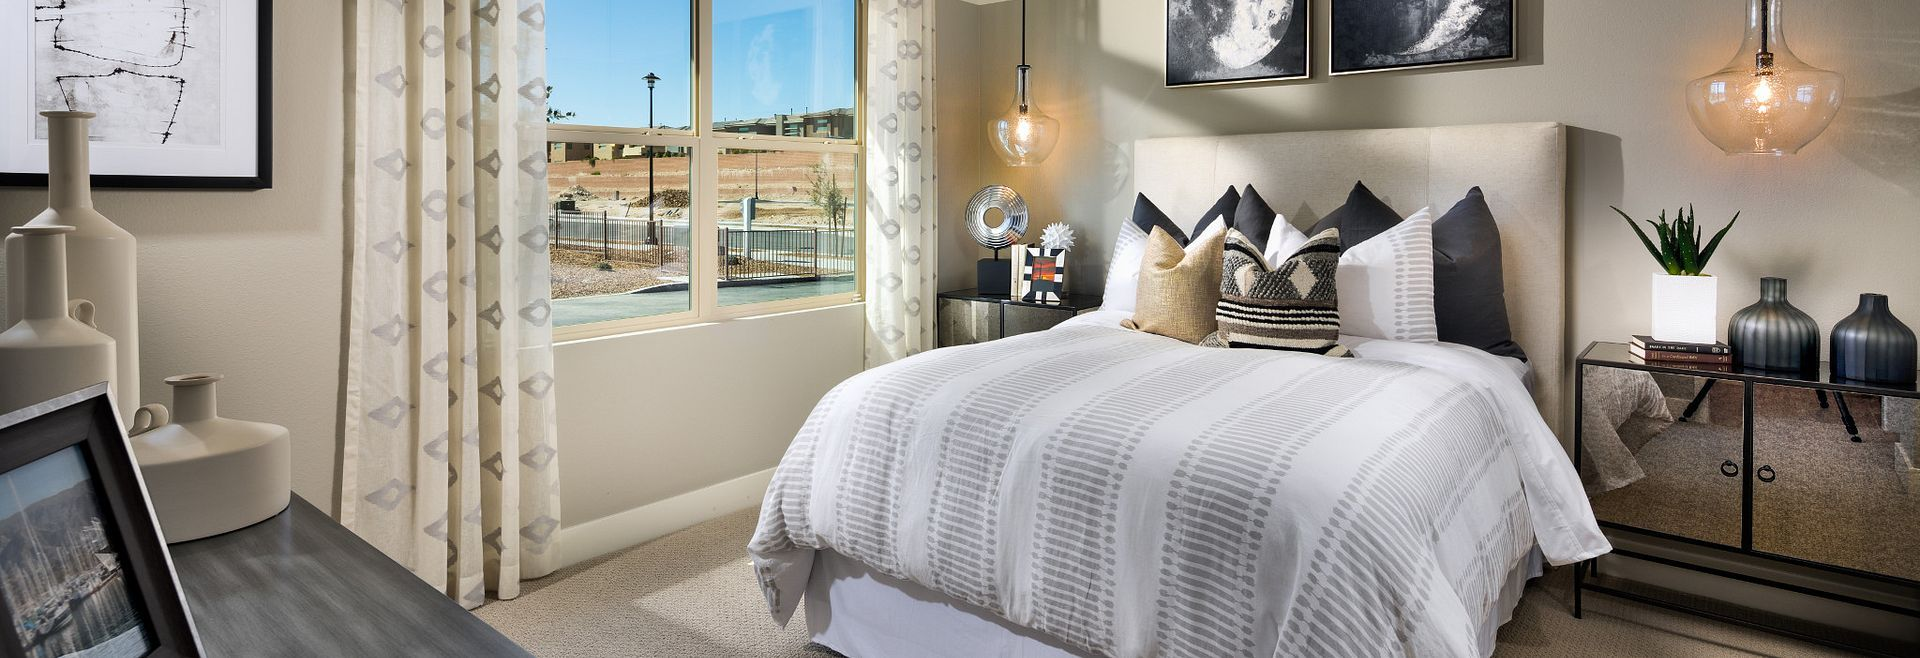 Bedroom featured in the Indulge By Shea Homes - Trilogy in Las Vegas, NV